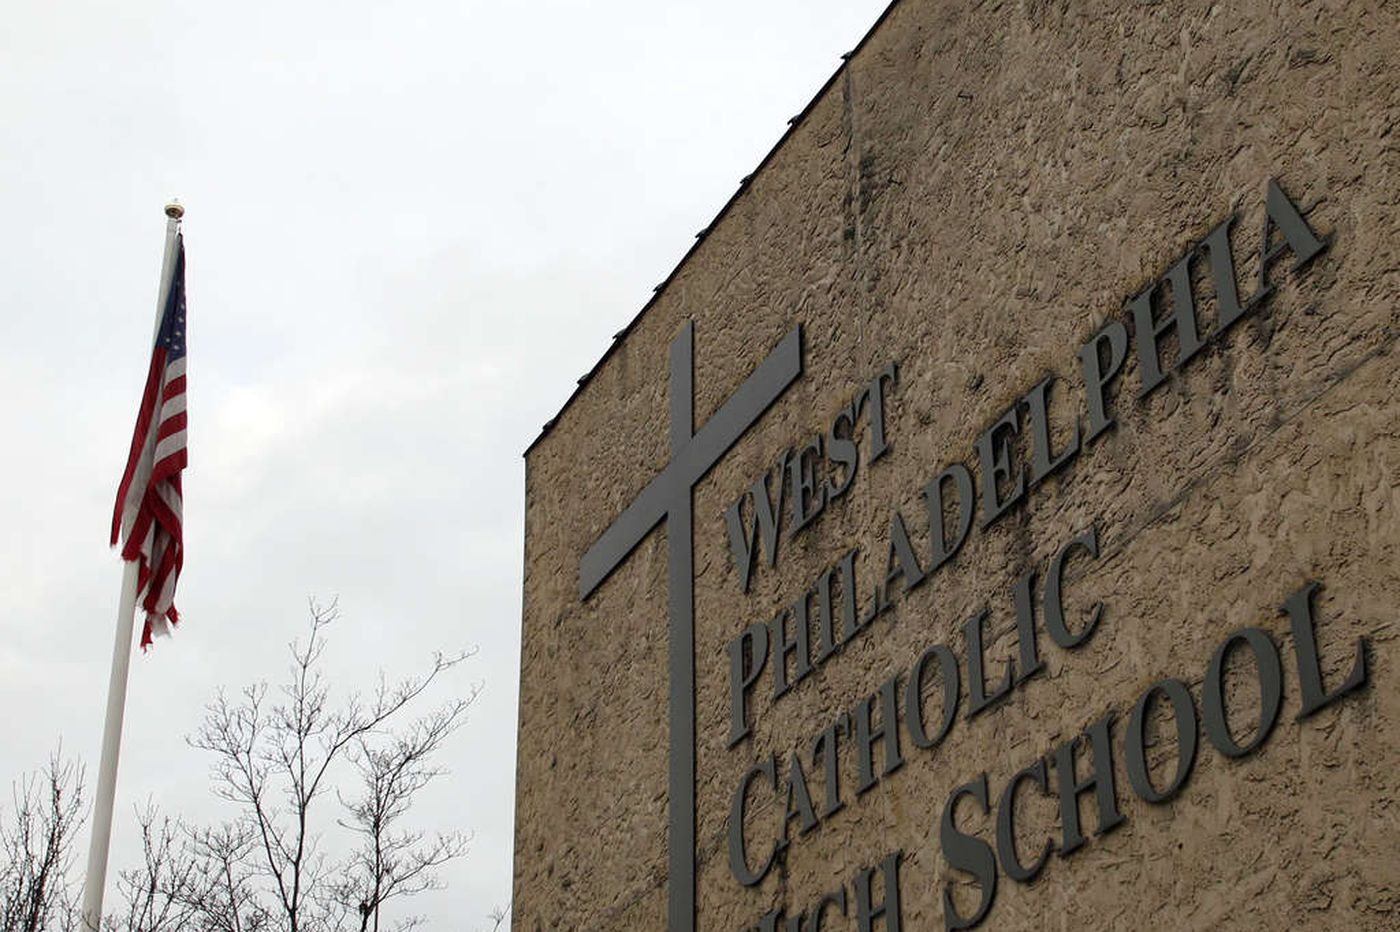 Rumors about Catholic school troubles 'ruining Christmas'